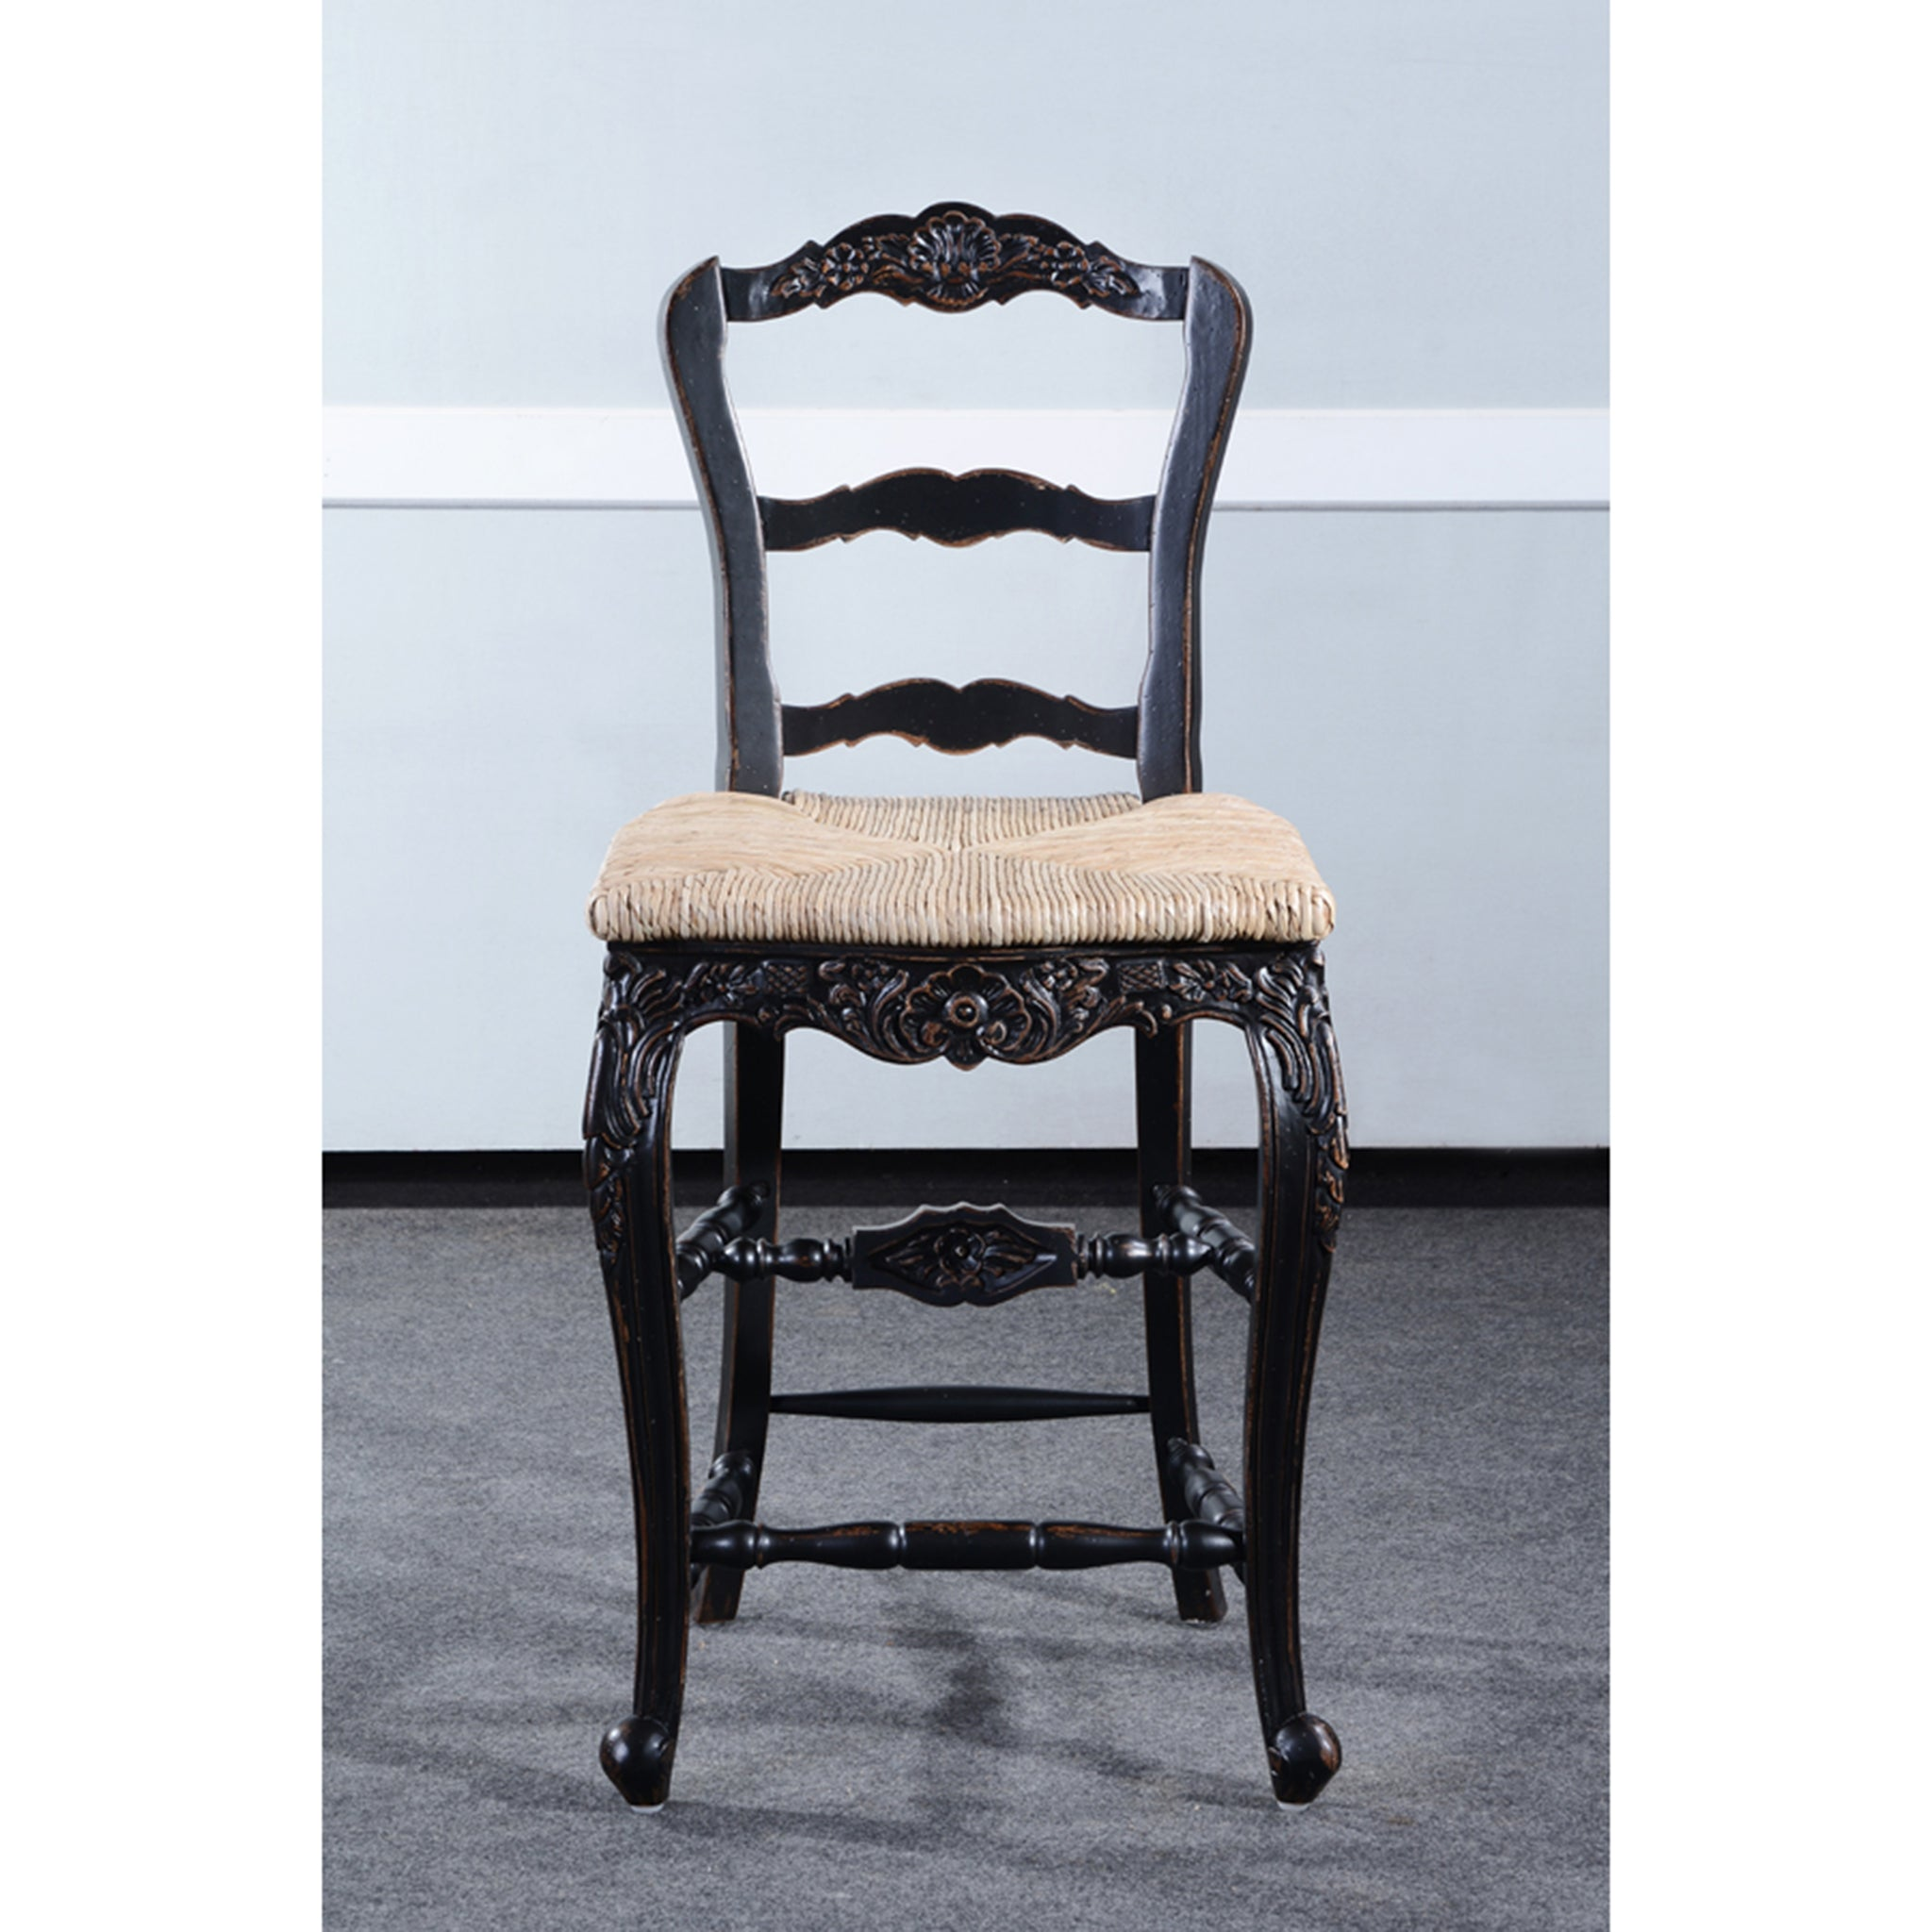 Farmhouse Black Distressed Counter Height Barstool Set of 3 - Furniture on Main